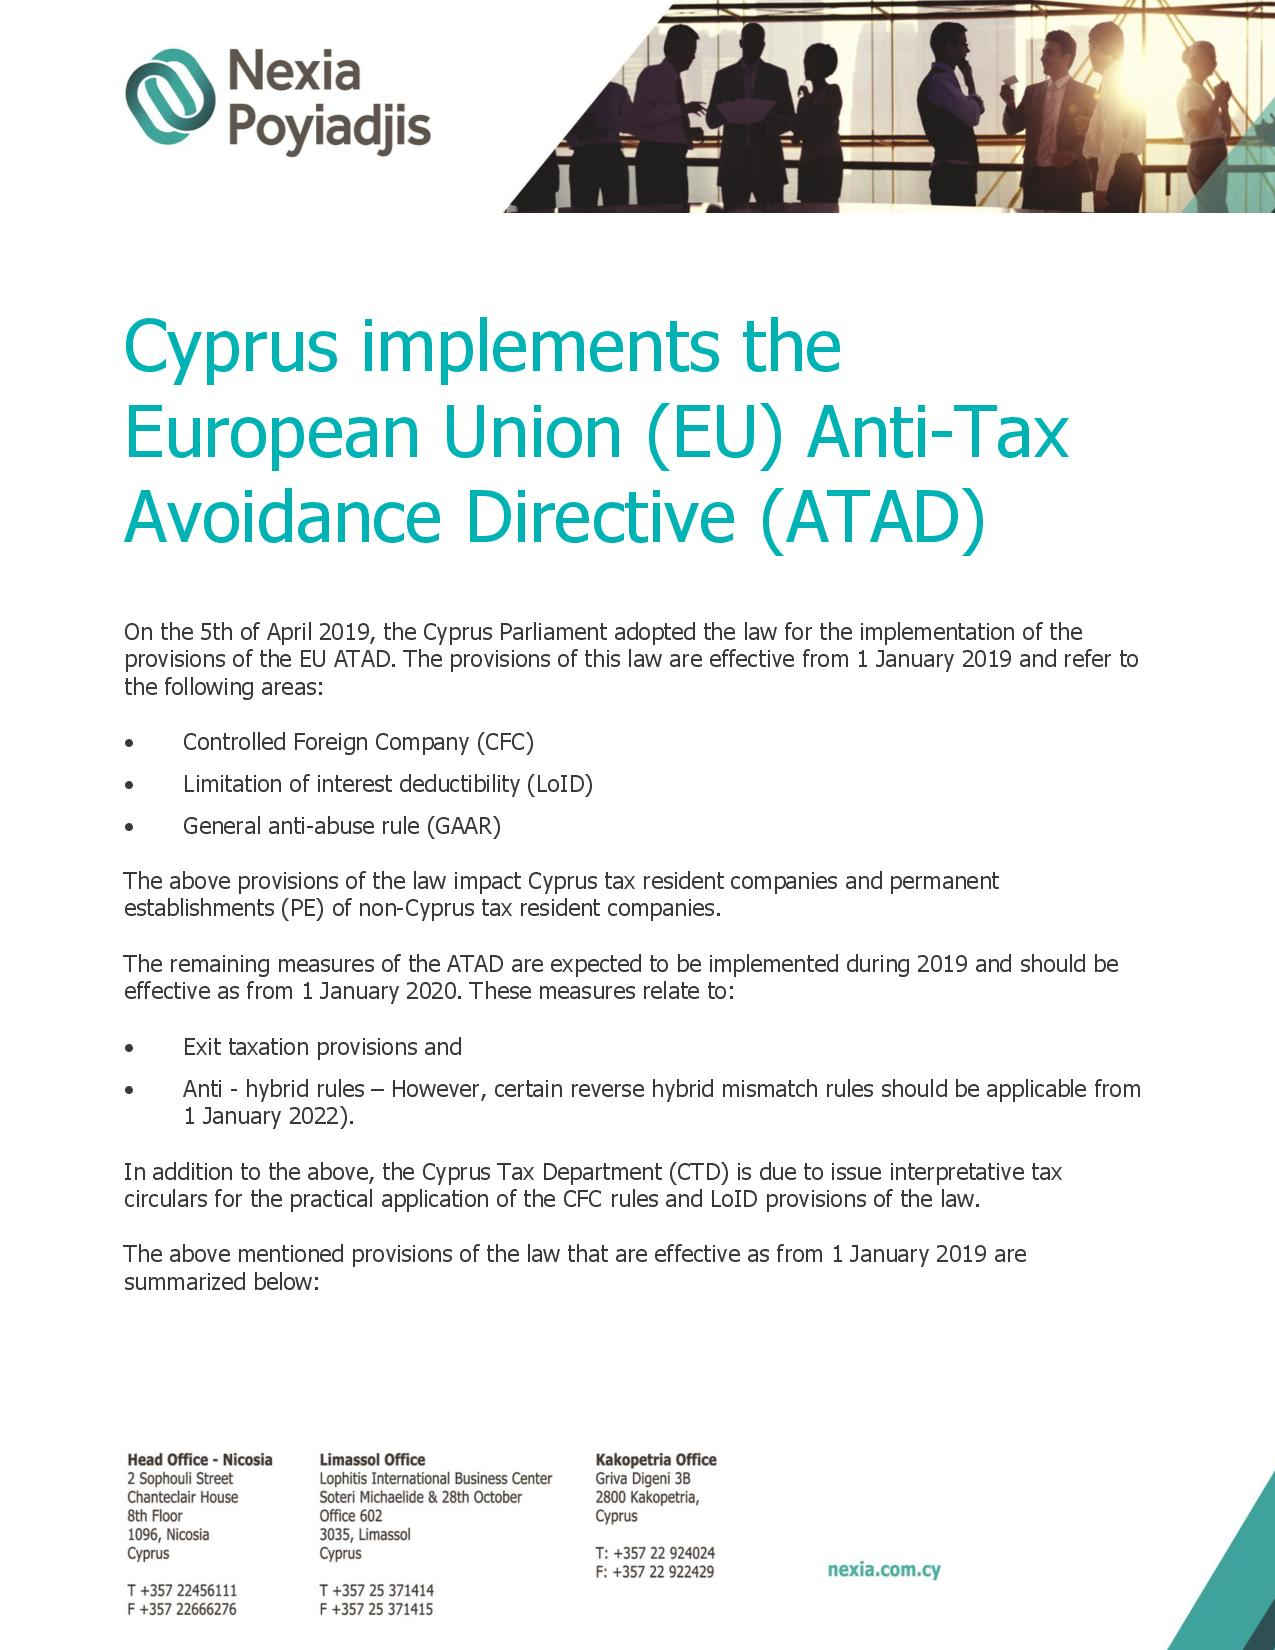 Tax newsletter on EU ATAD implementation - June 2019